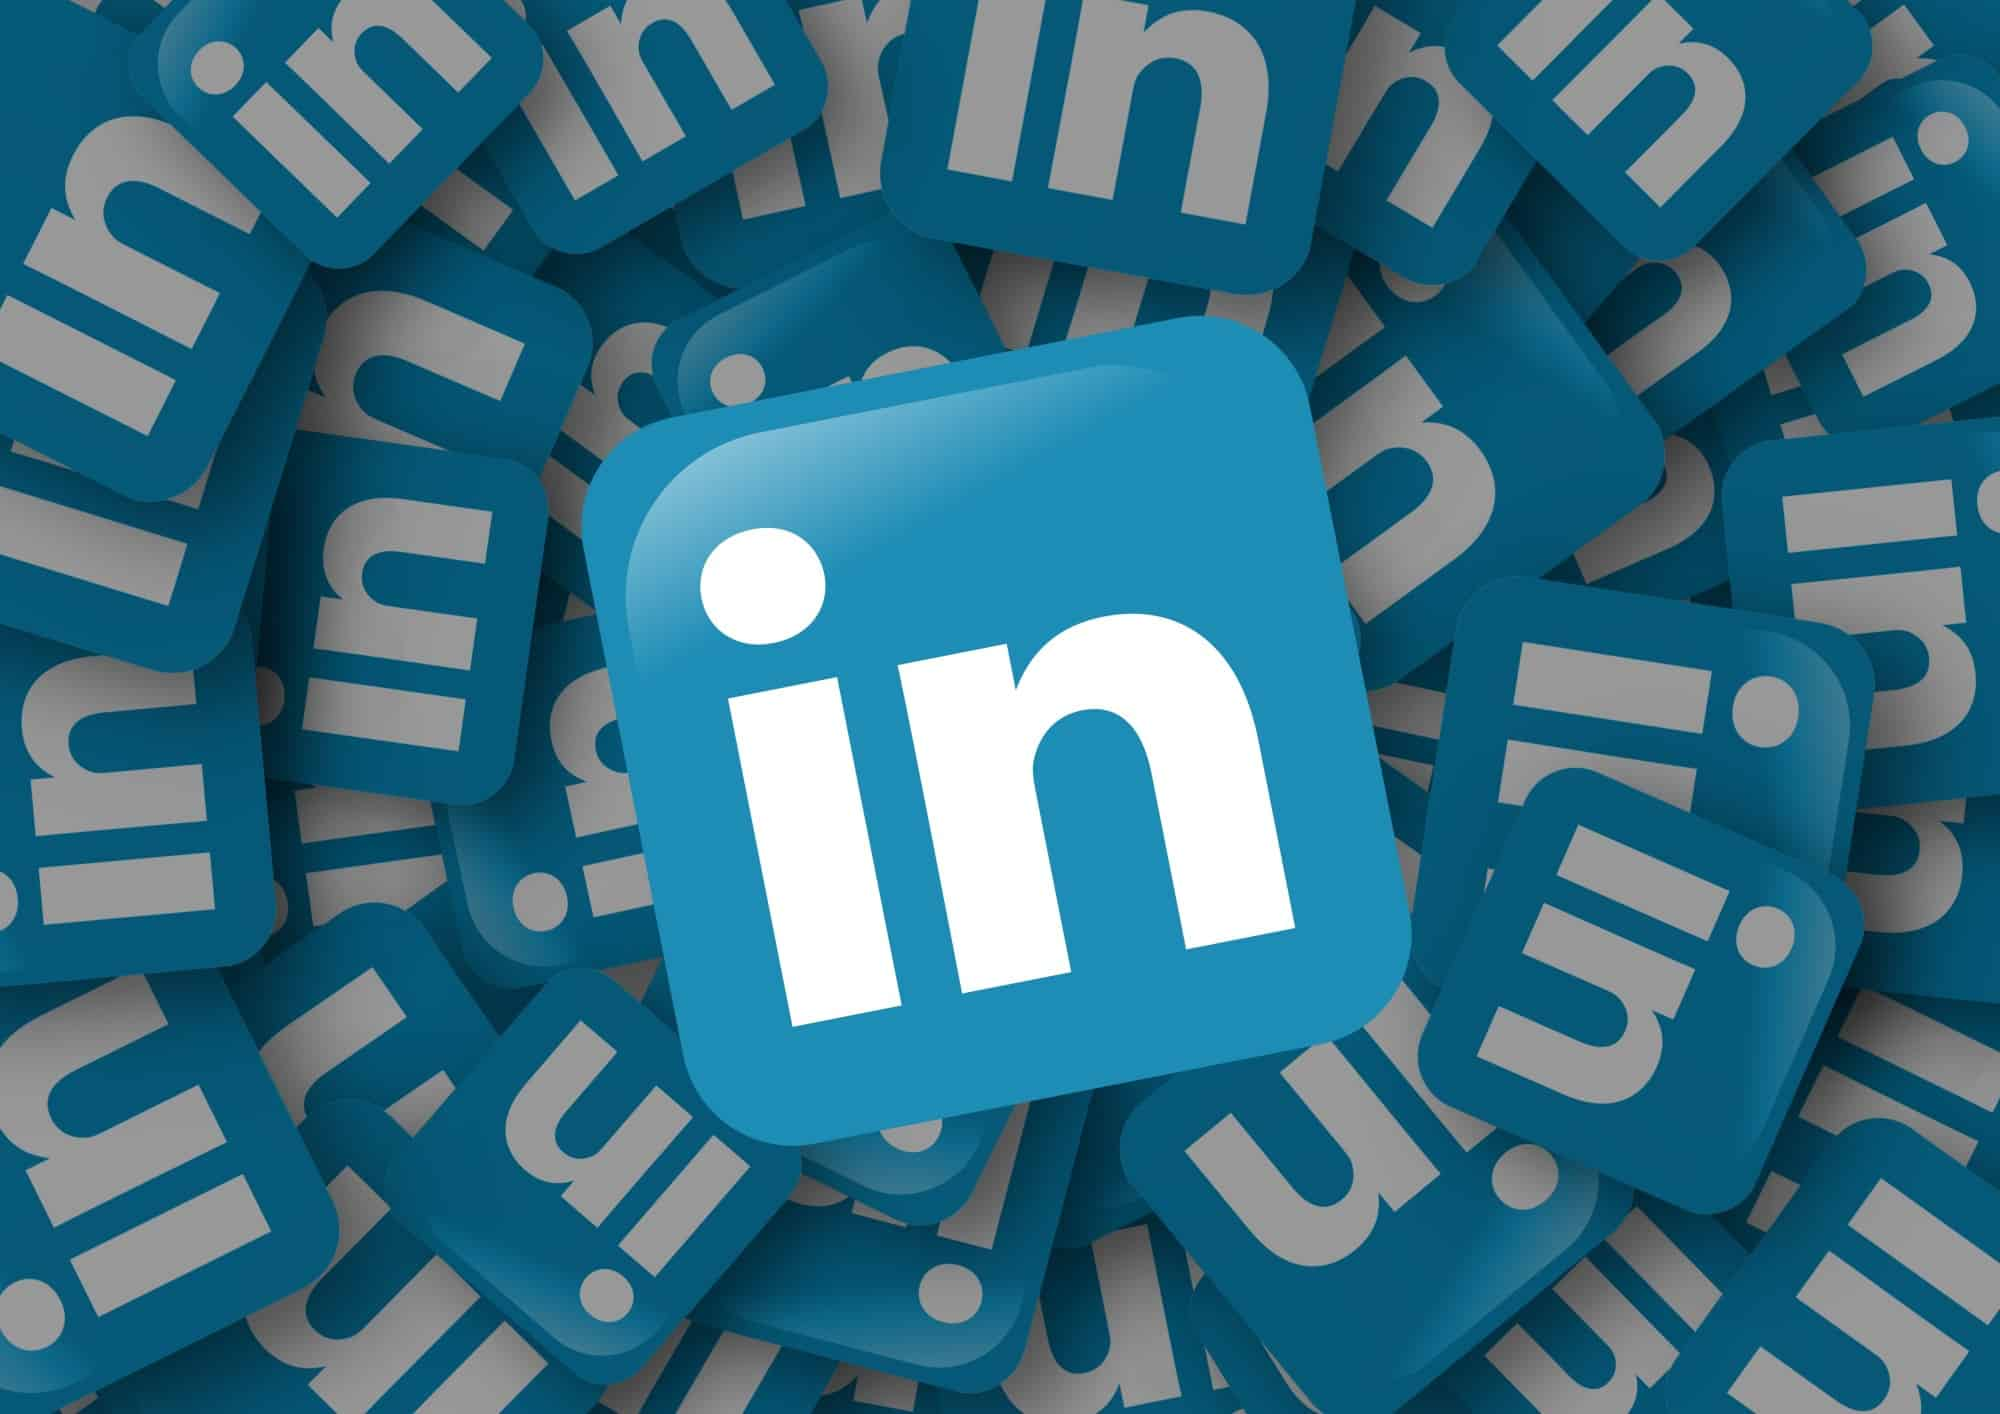 Digital Marketing LinkedIn logo image